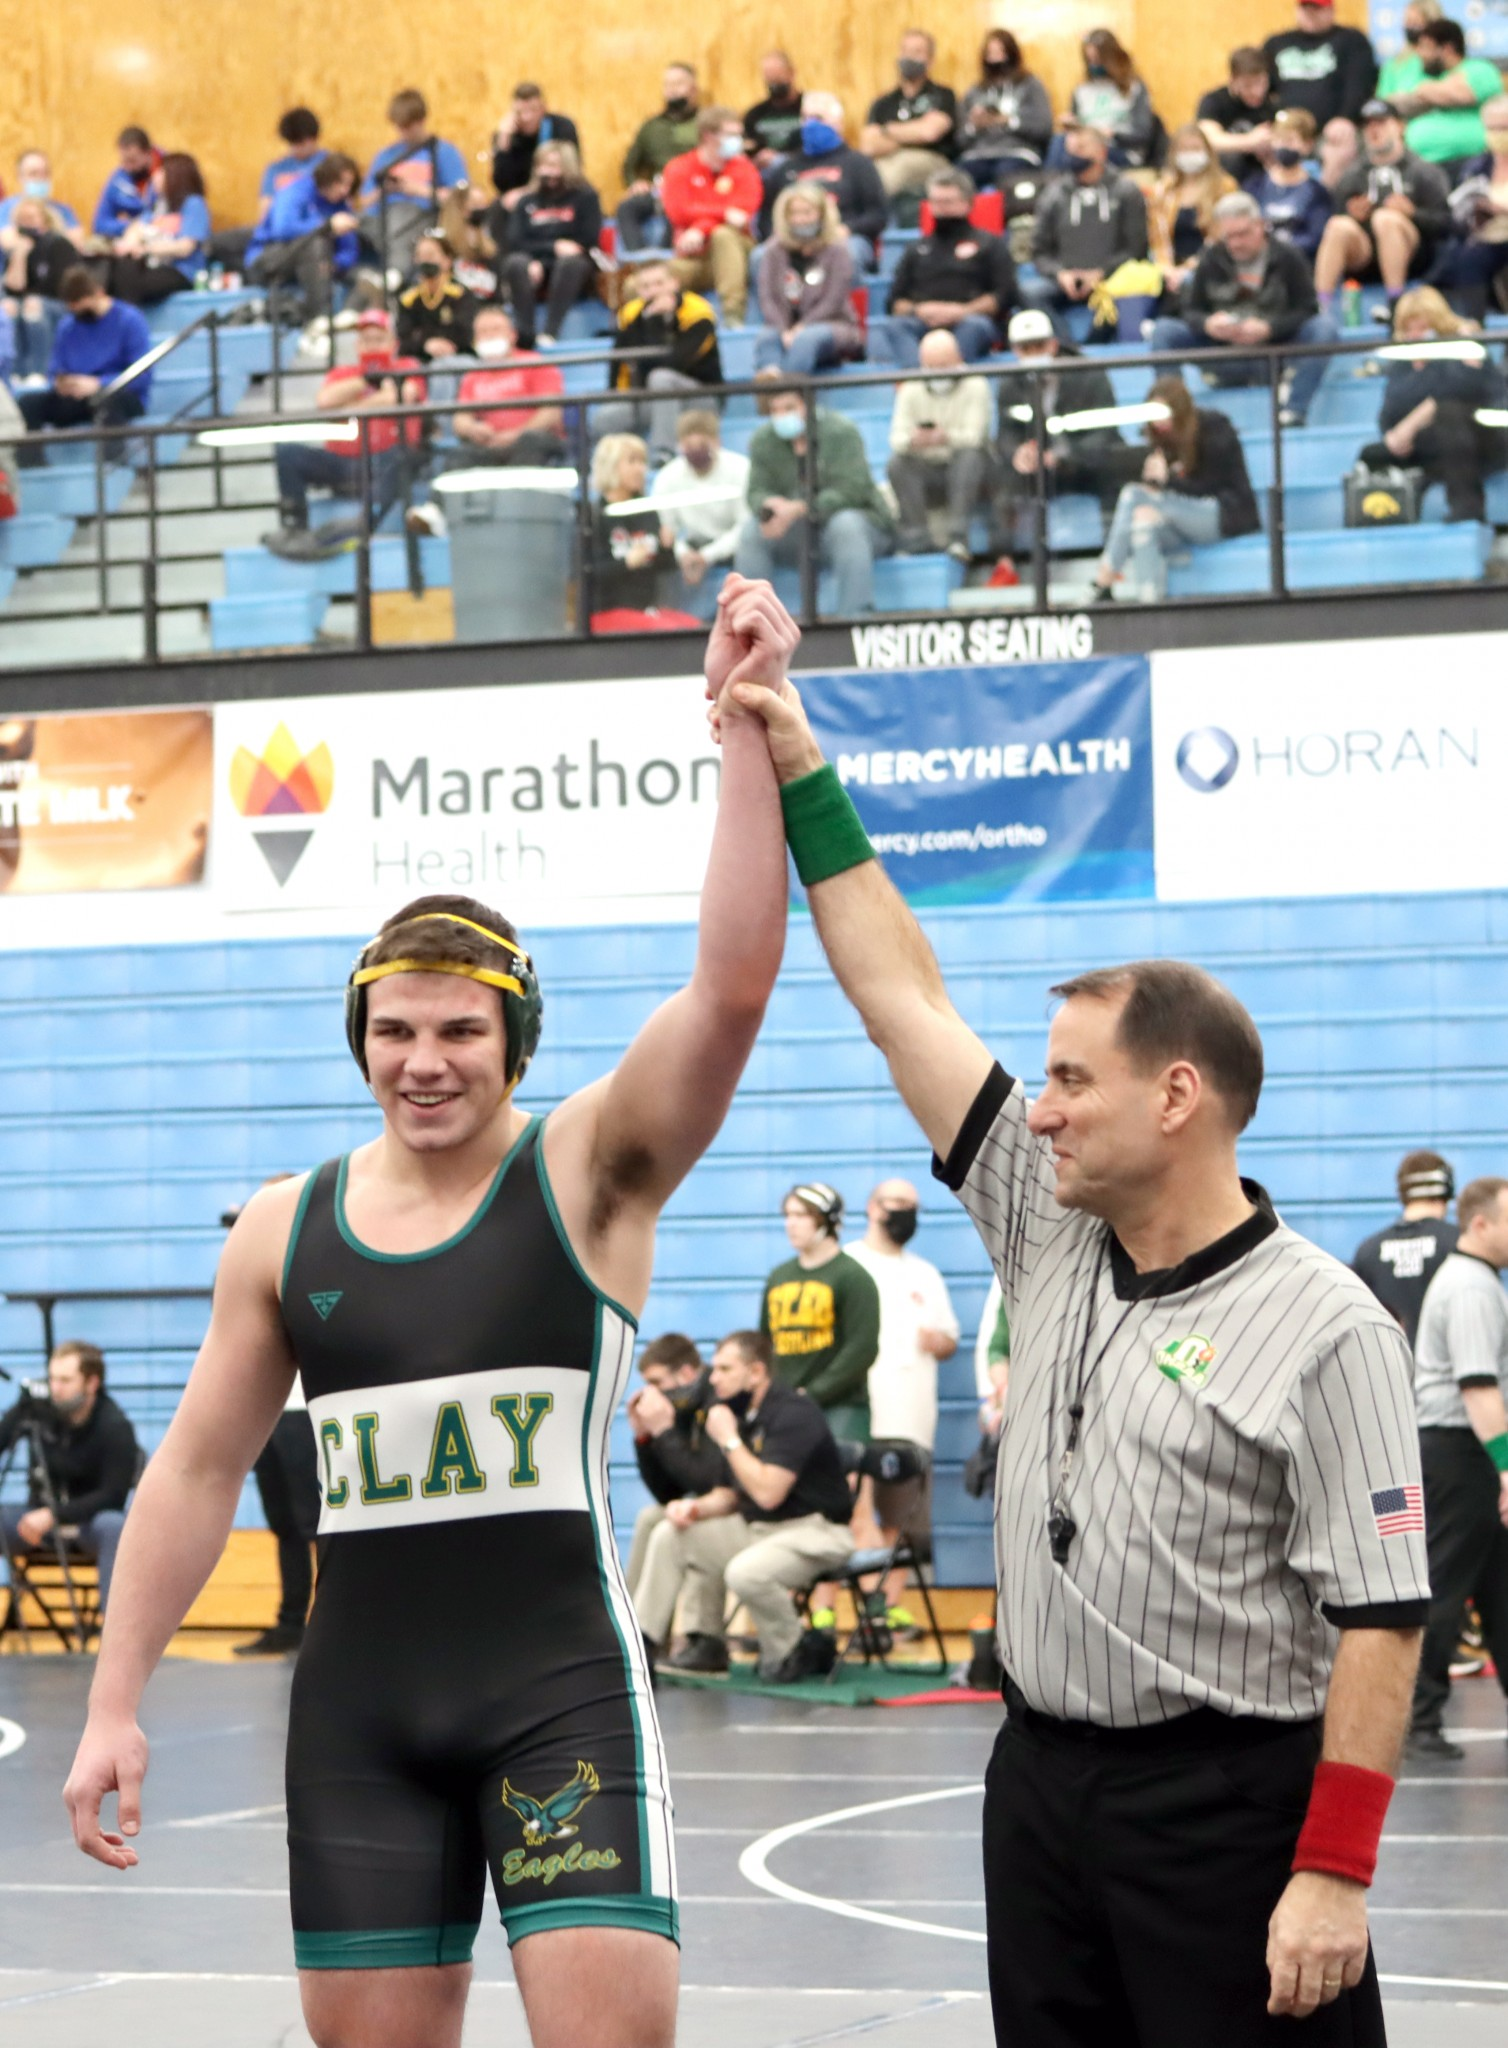 At the Division I state meet at Hilliard Darby High School, Clay junior 220-pound wrestler Ty Cobb finished eighth despite an arm injury. (Photo by Rich Wagner)